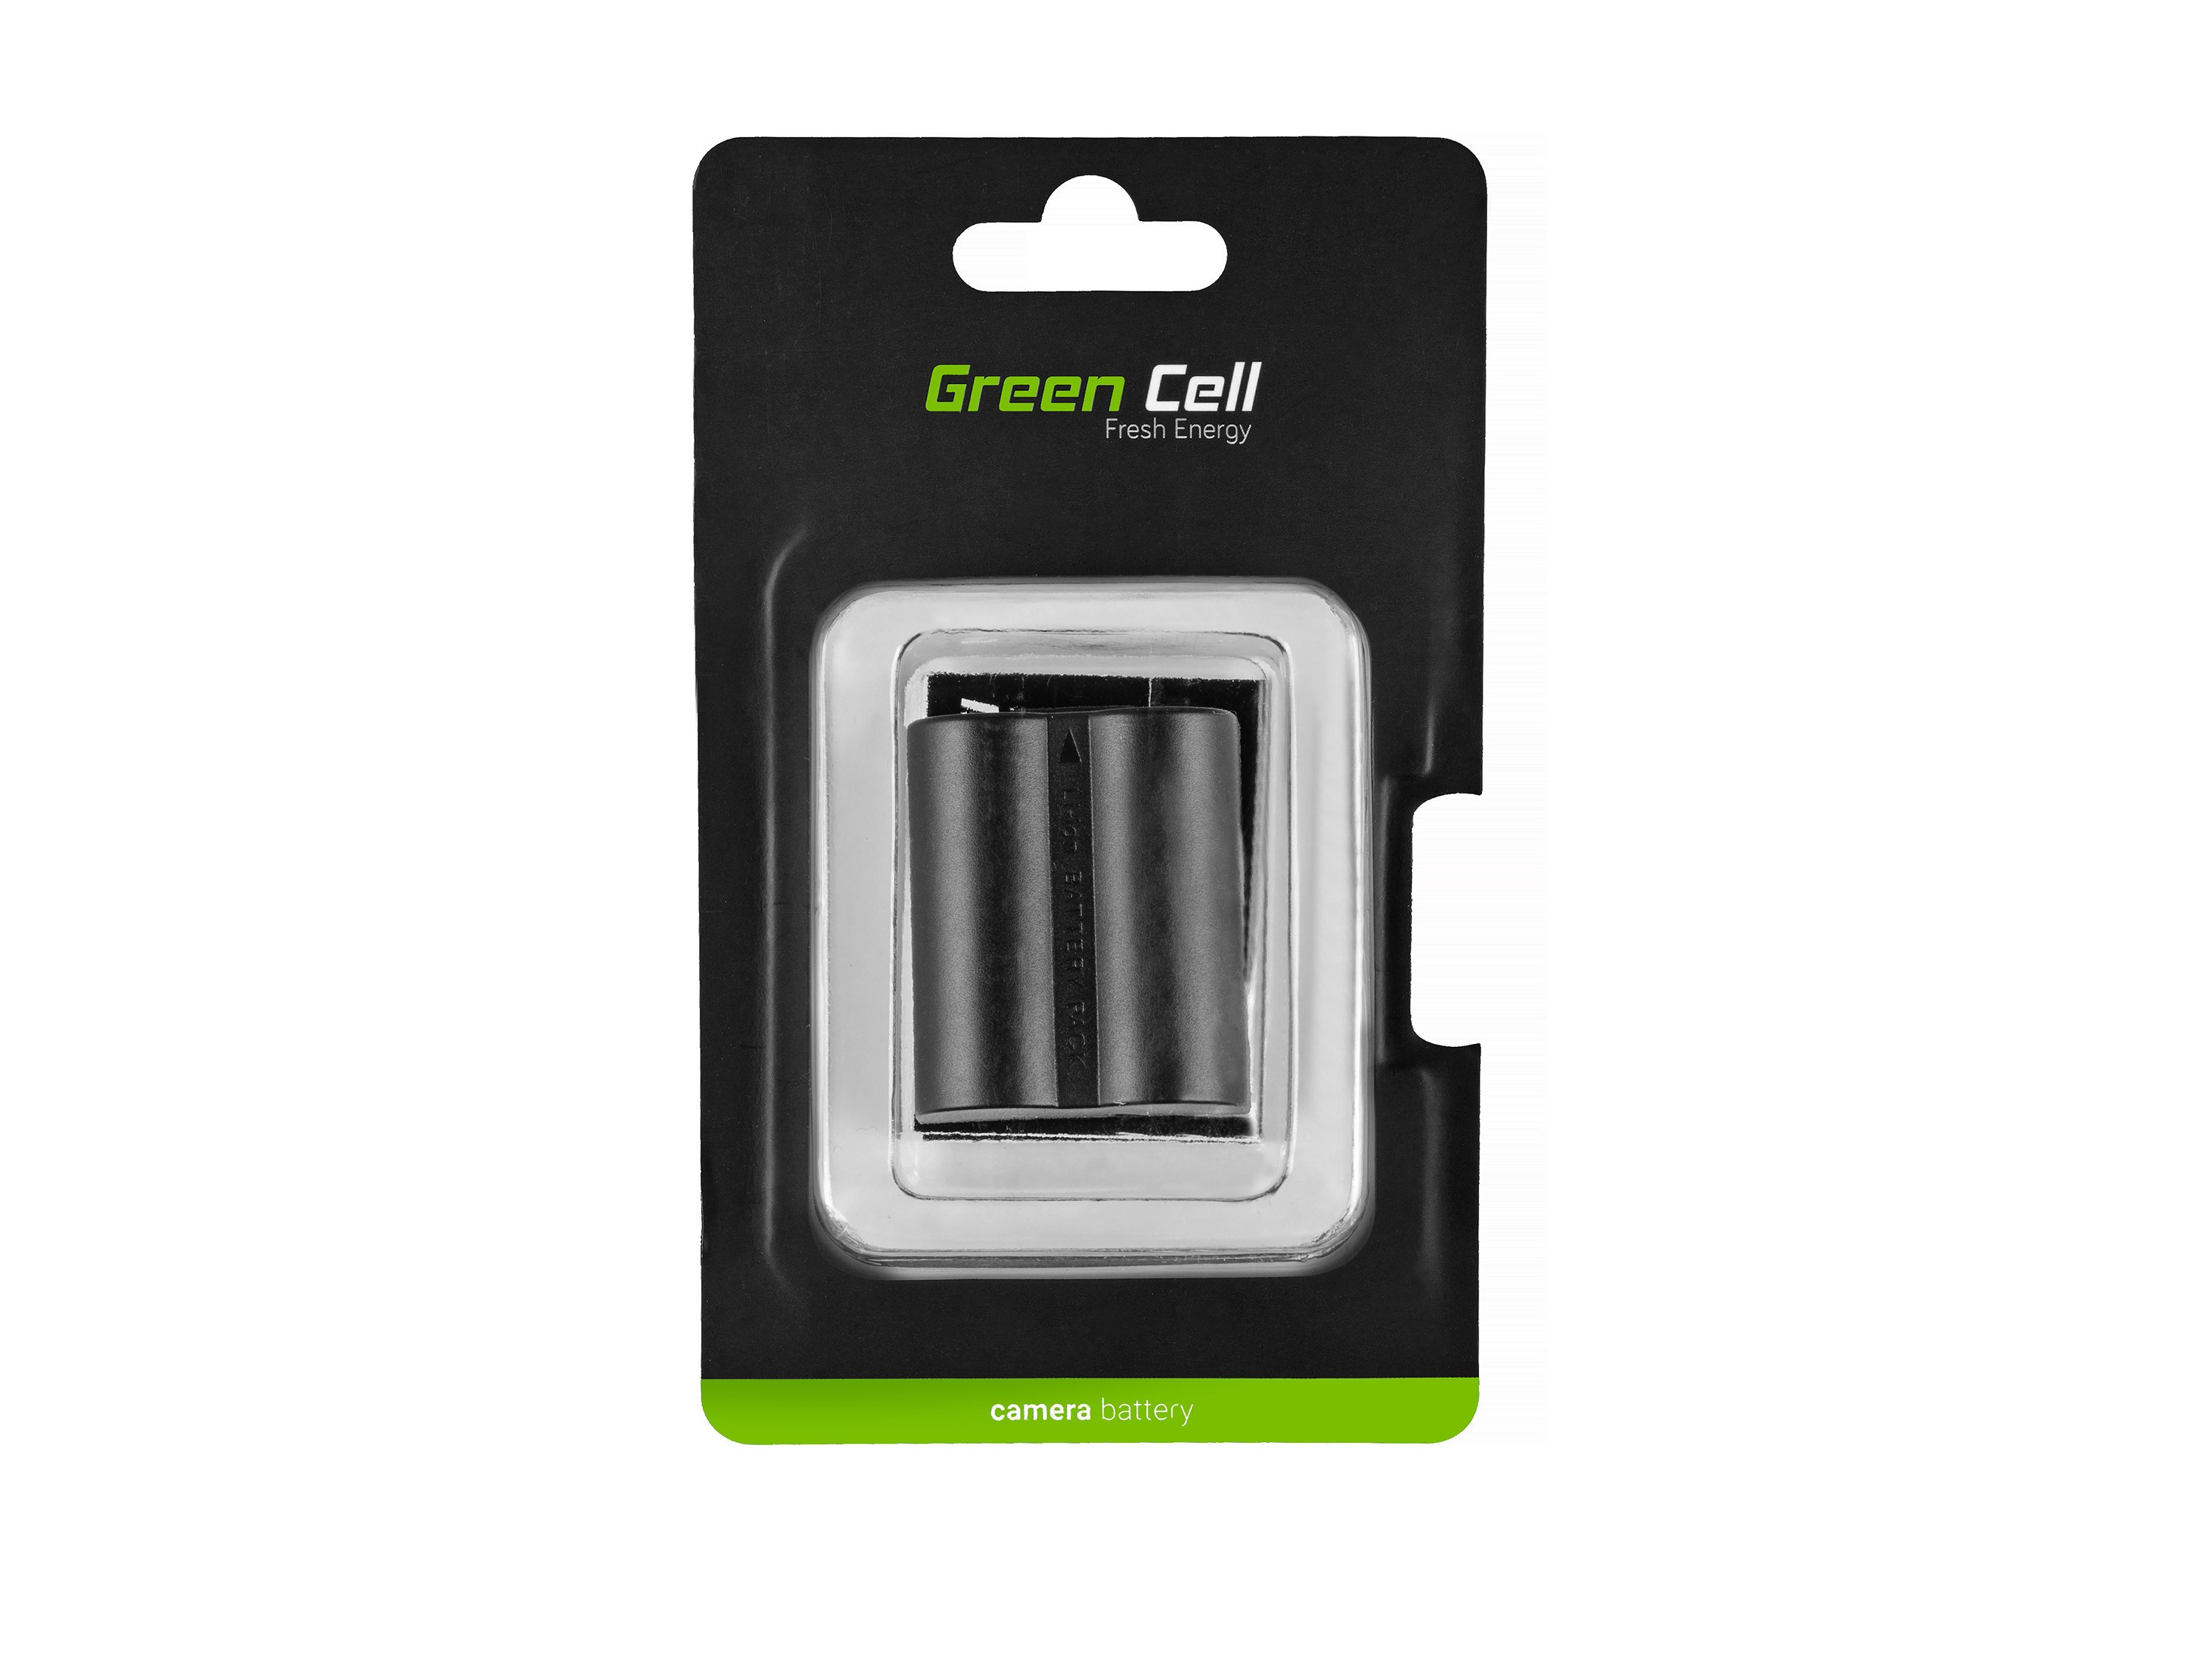 Green Cell DMW-BMA7/CGA-S006 Camera Battery for Panasonic DMC FZ35, FZ7, FZ8, FZ18, FZ30, FZ50 7.4V 700mAh